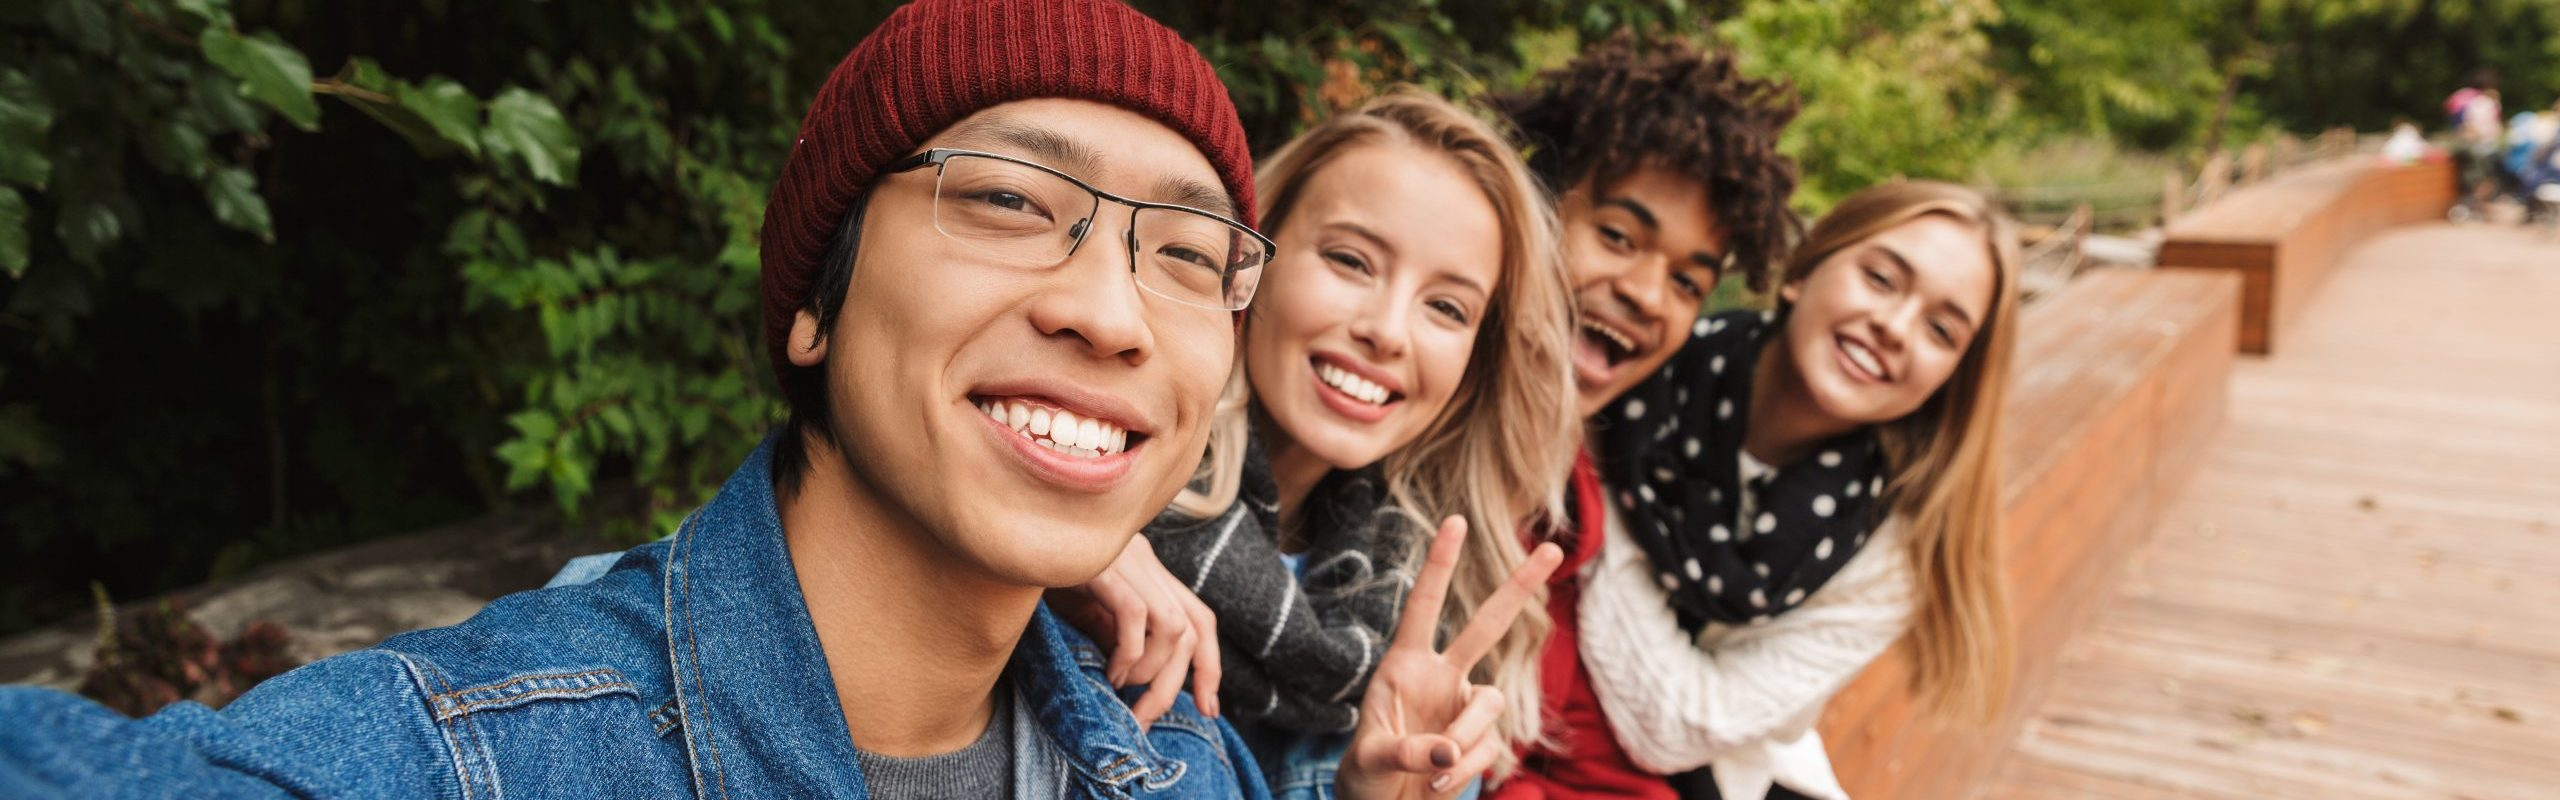 teens smiling at the camera, taking a selfie